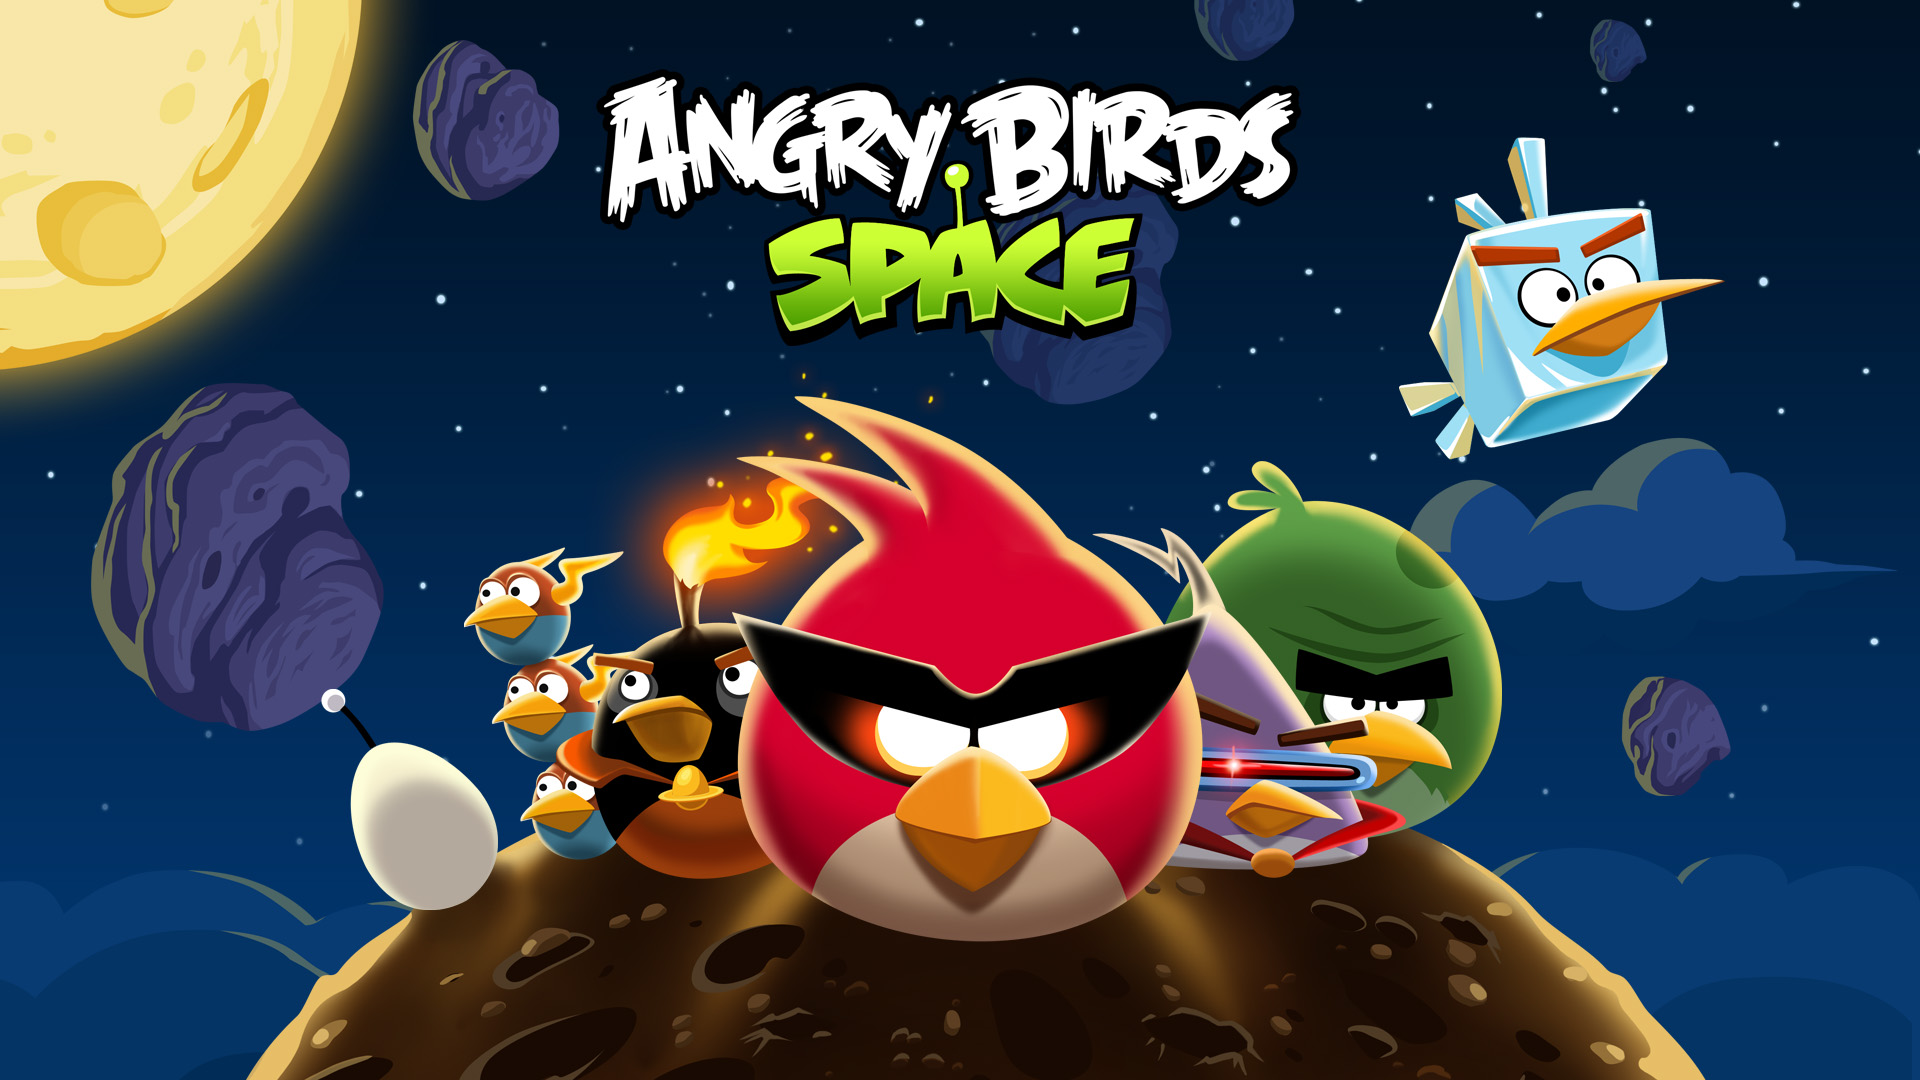 'Angry Birds Space' Launches Game into Orbit